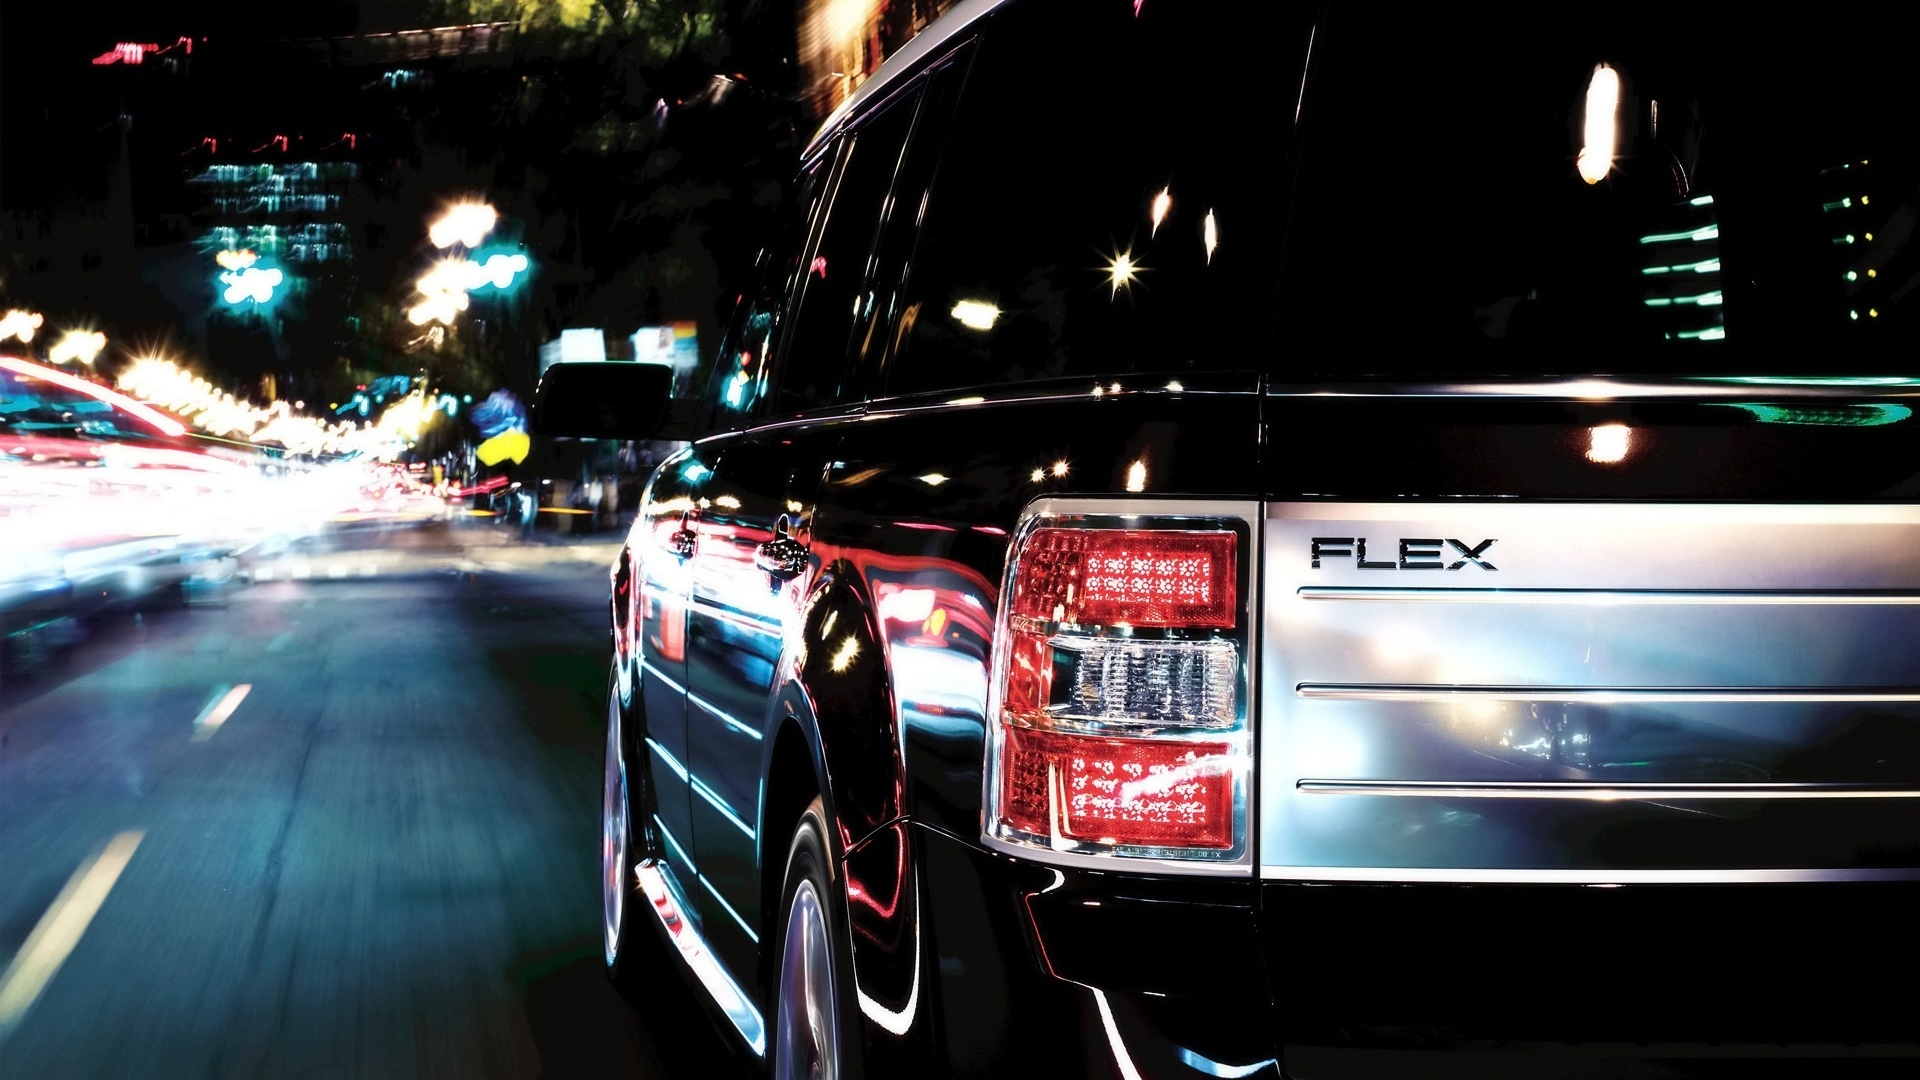 Ford Flex Speed 2009 for 1920 x 1080 HDTV 1080p resolution